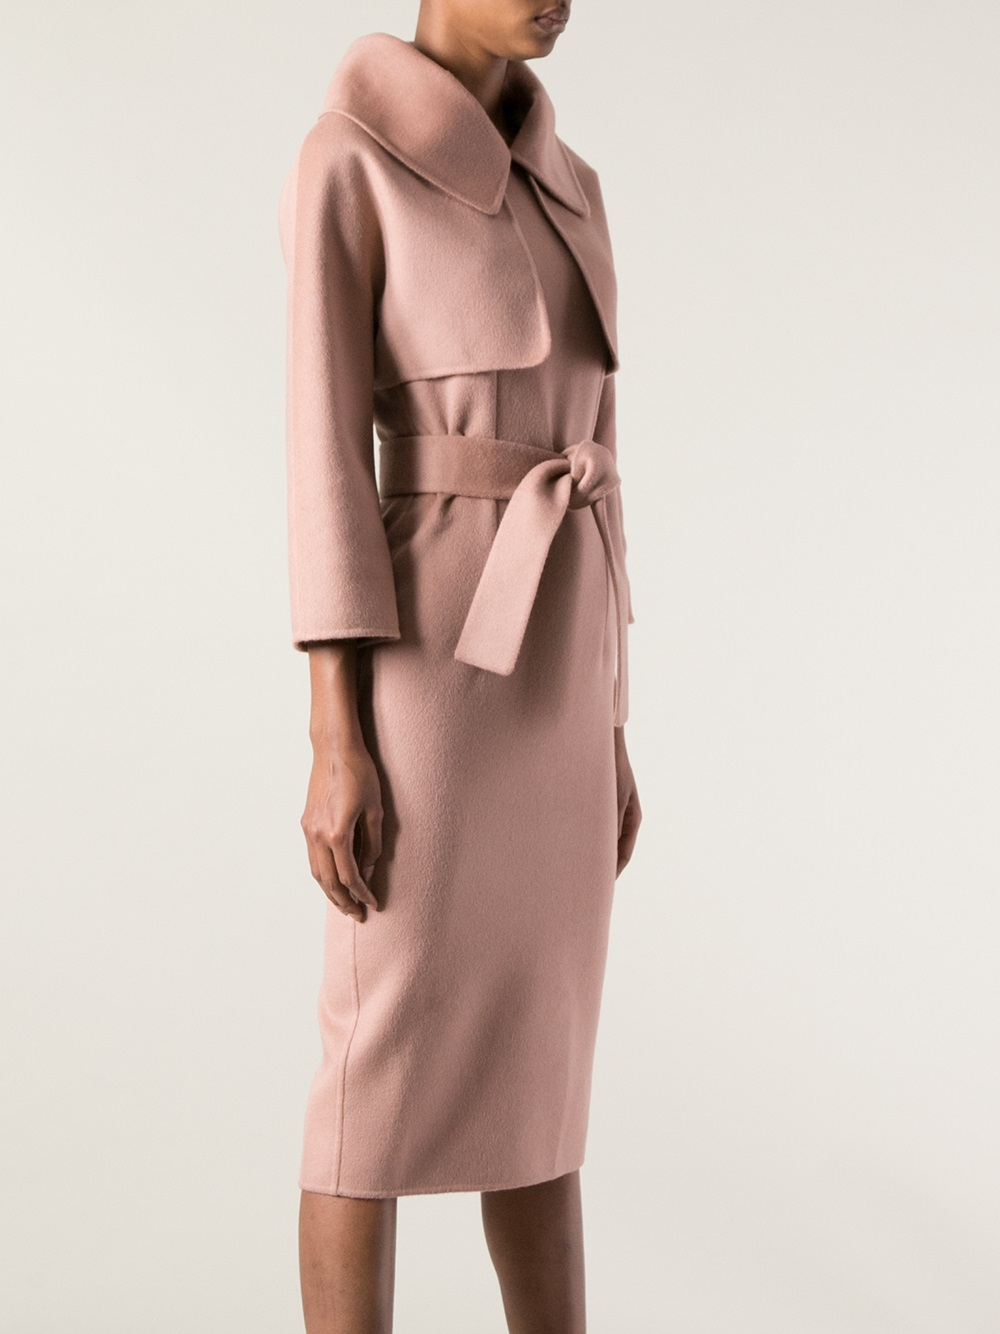 Dsquared² Belted Coat Dress in Pink | Lyst